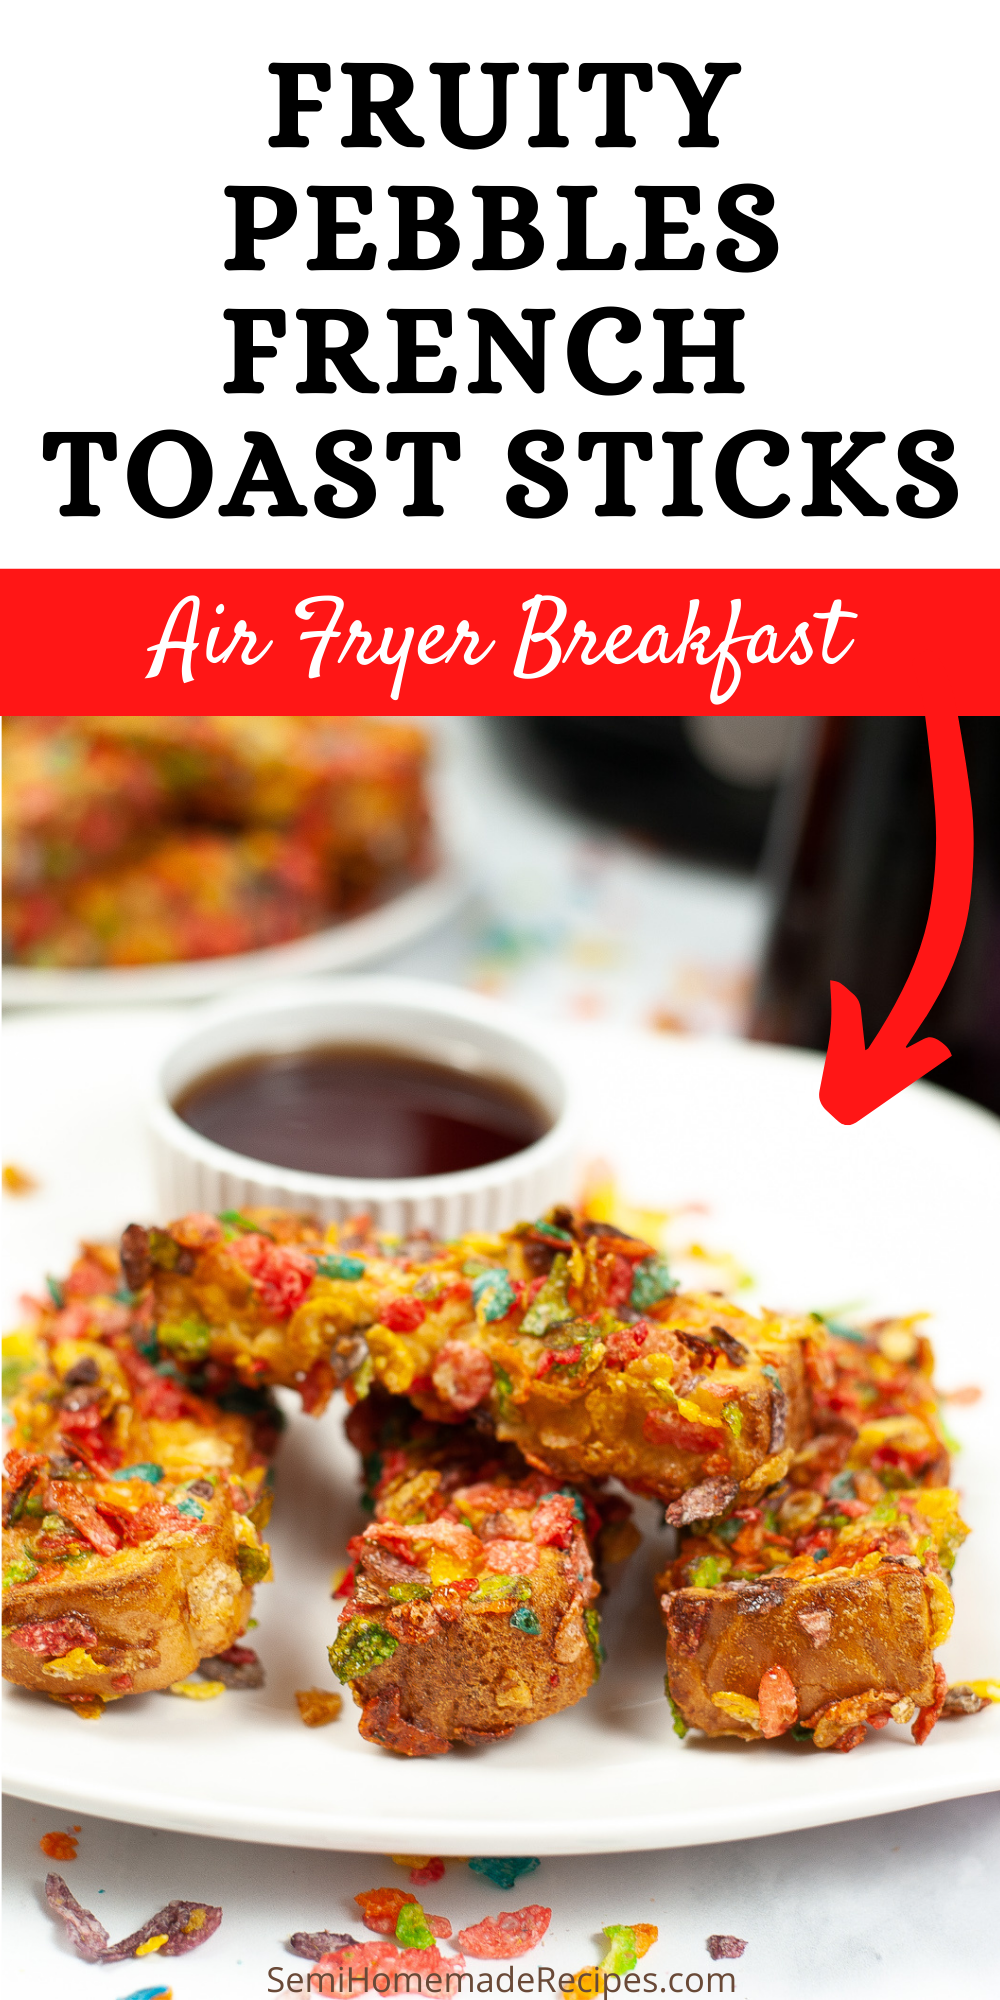 Air Fryer Fruity Pebbles French Toast Sticks are a fun breakfast that kids will love! These cereal French toast sticks are colorful, easy to make and can be made with any of your favorite cereals!